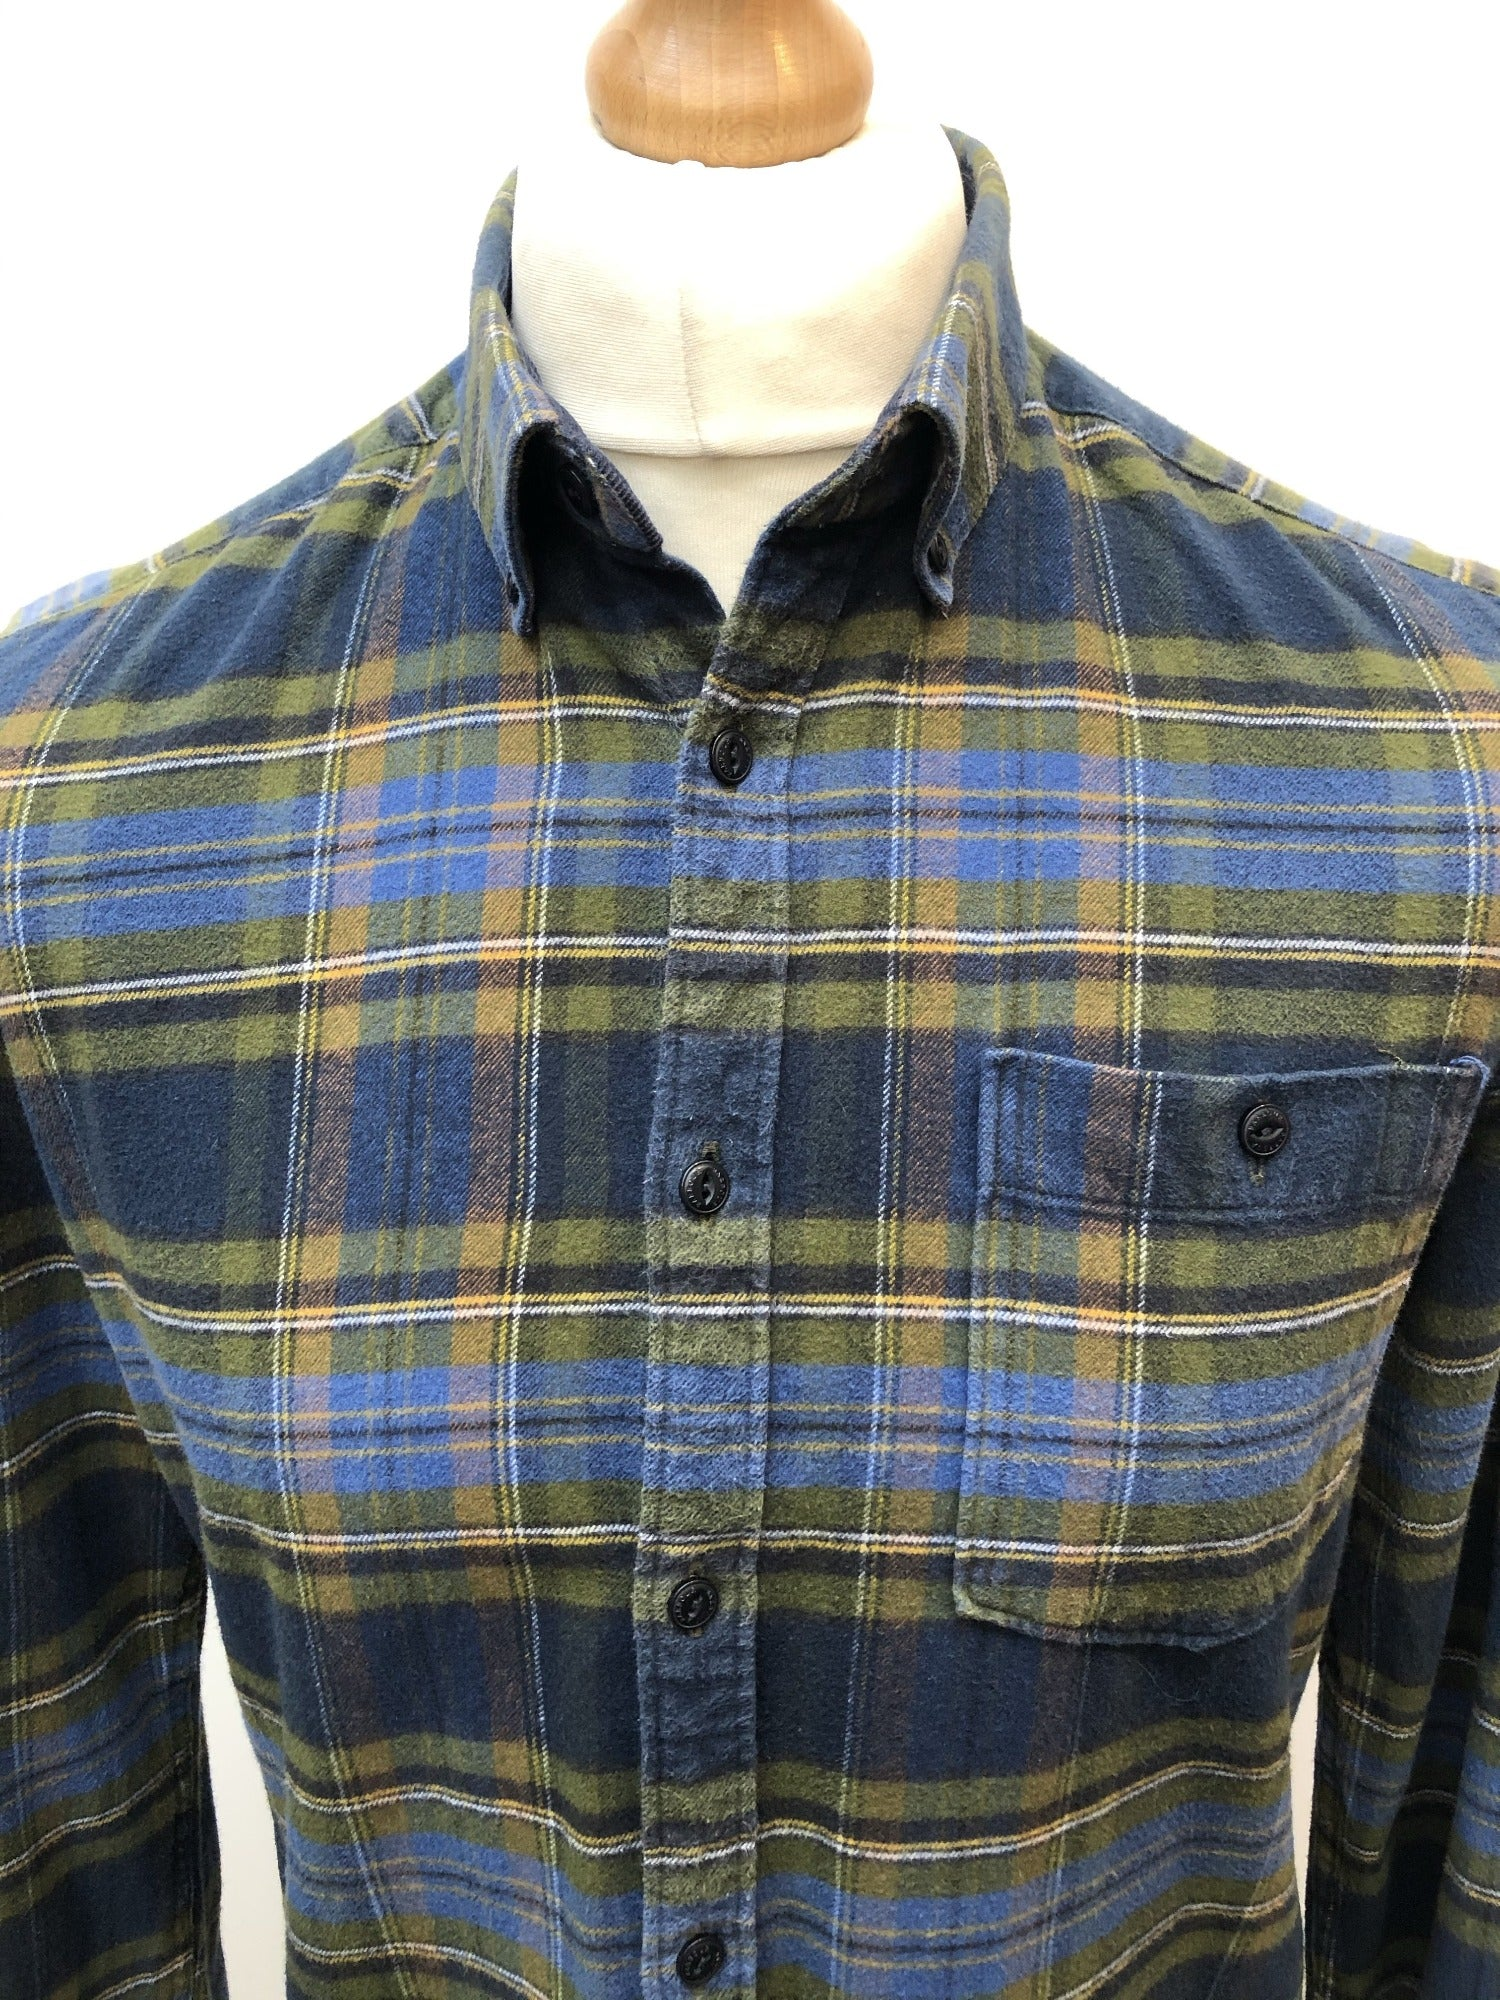 Mens Barbour Beacon Brand Blue and Green Check Shirt - Size M Slim Fit - Urban Village Vintage